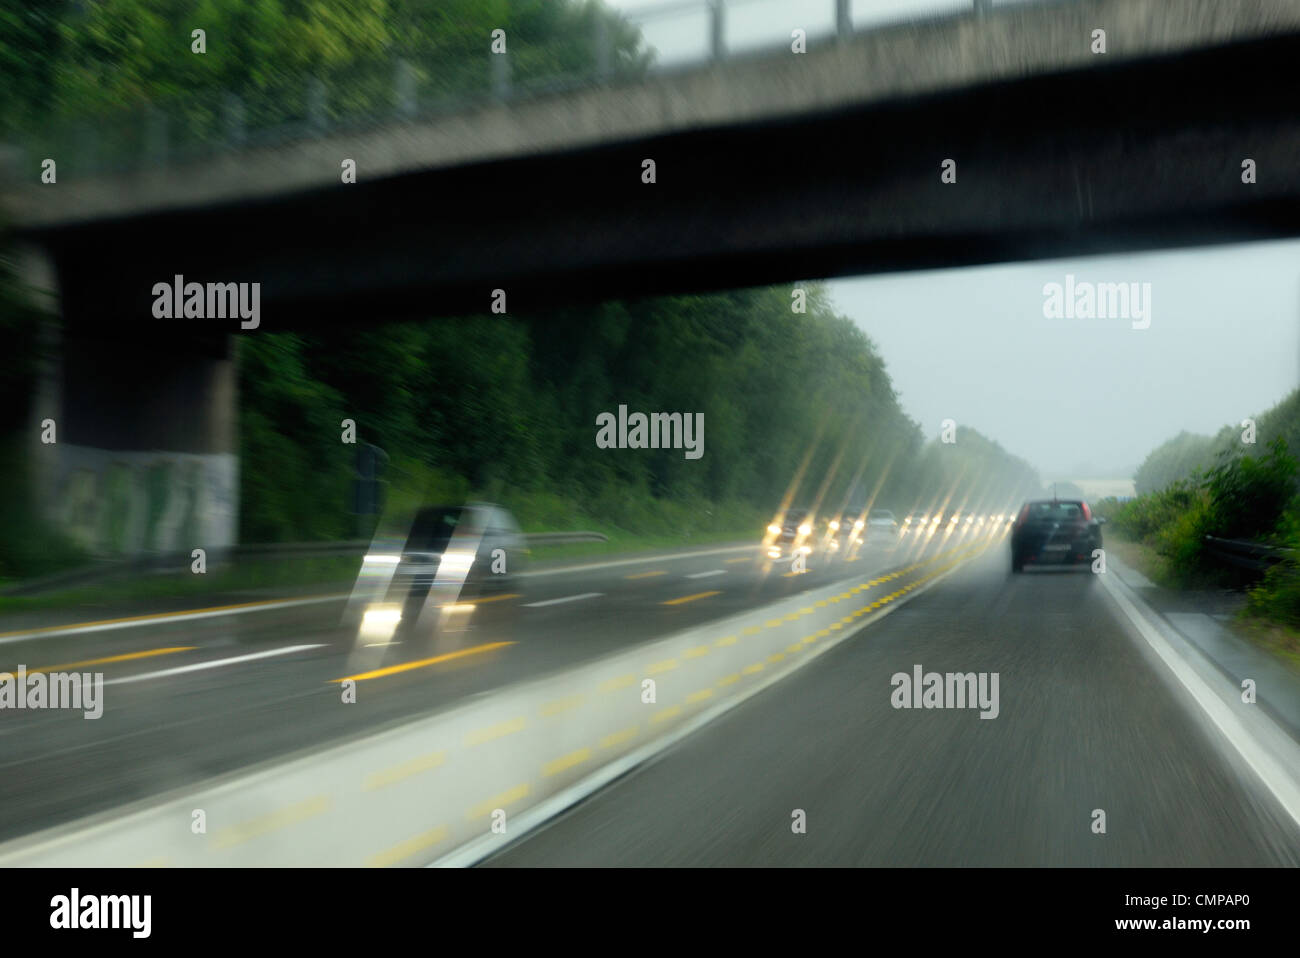 Deliberate motion blur. Driving on German autobahn motorway in Nordrhein-Westfalen near Dusseldorf and Essen on - Stock Image